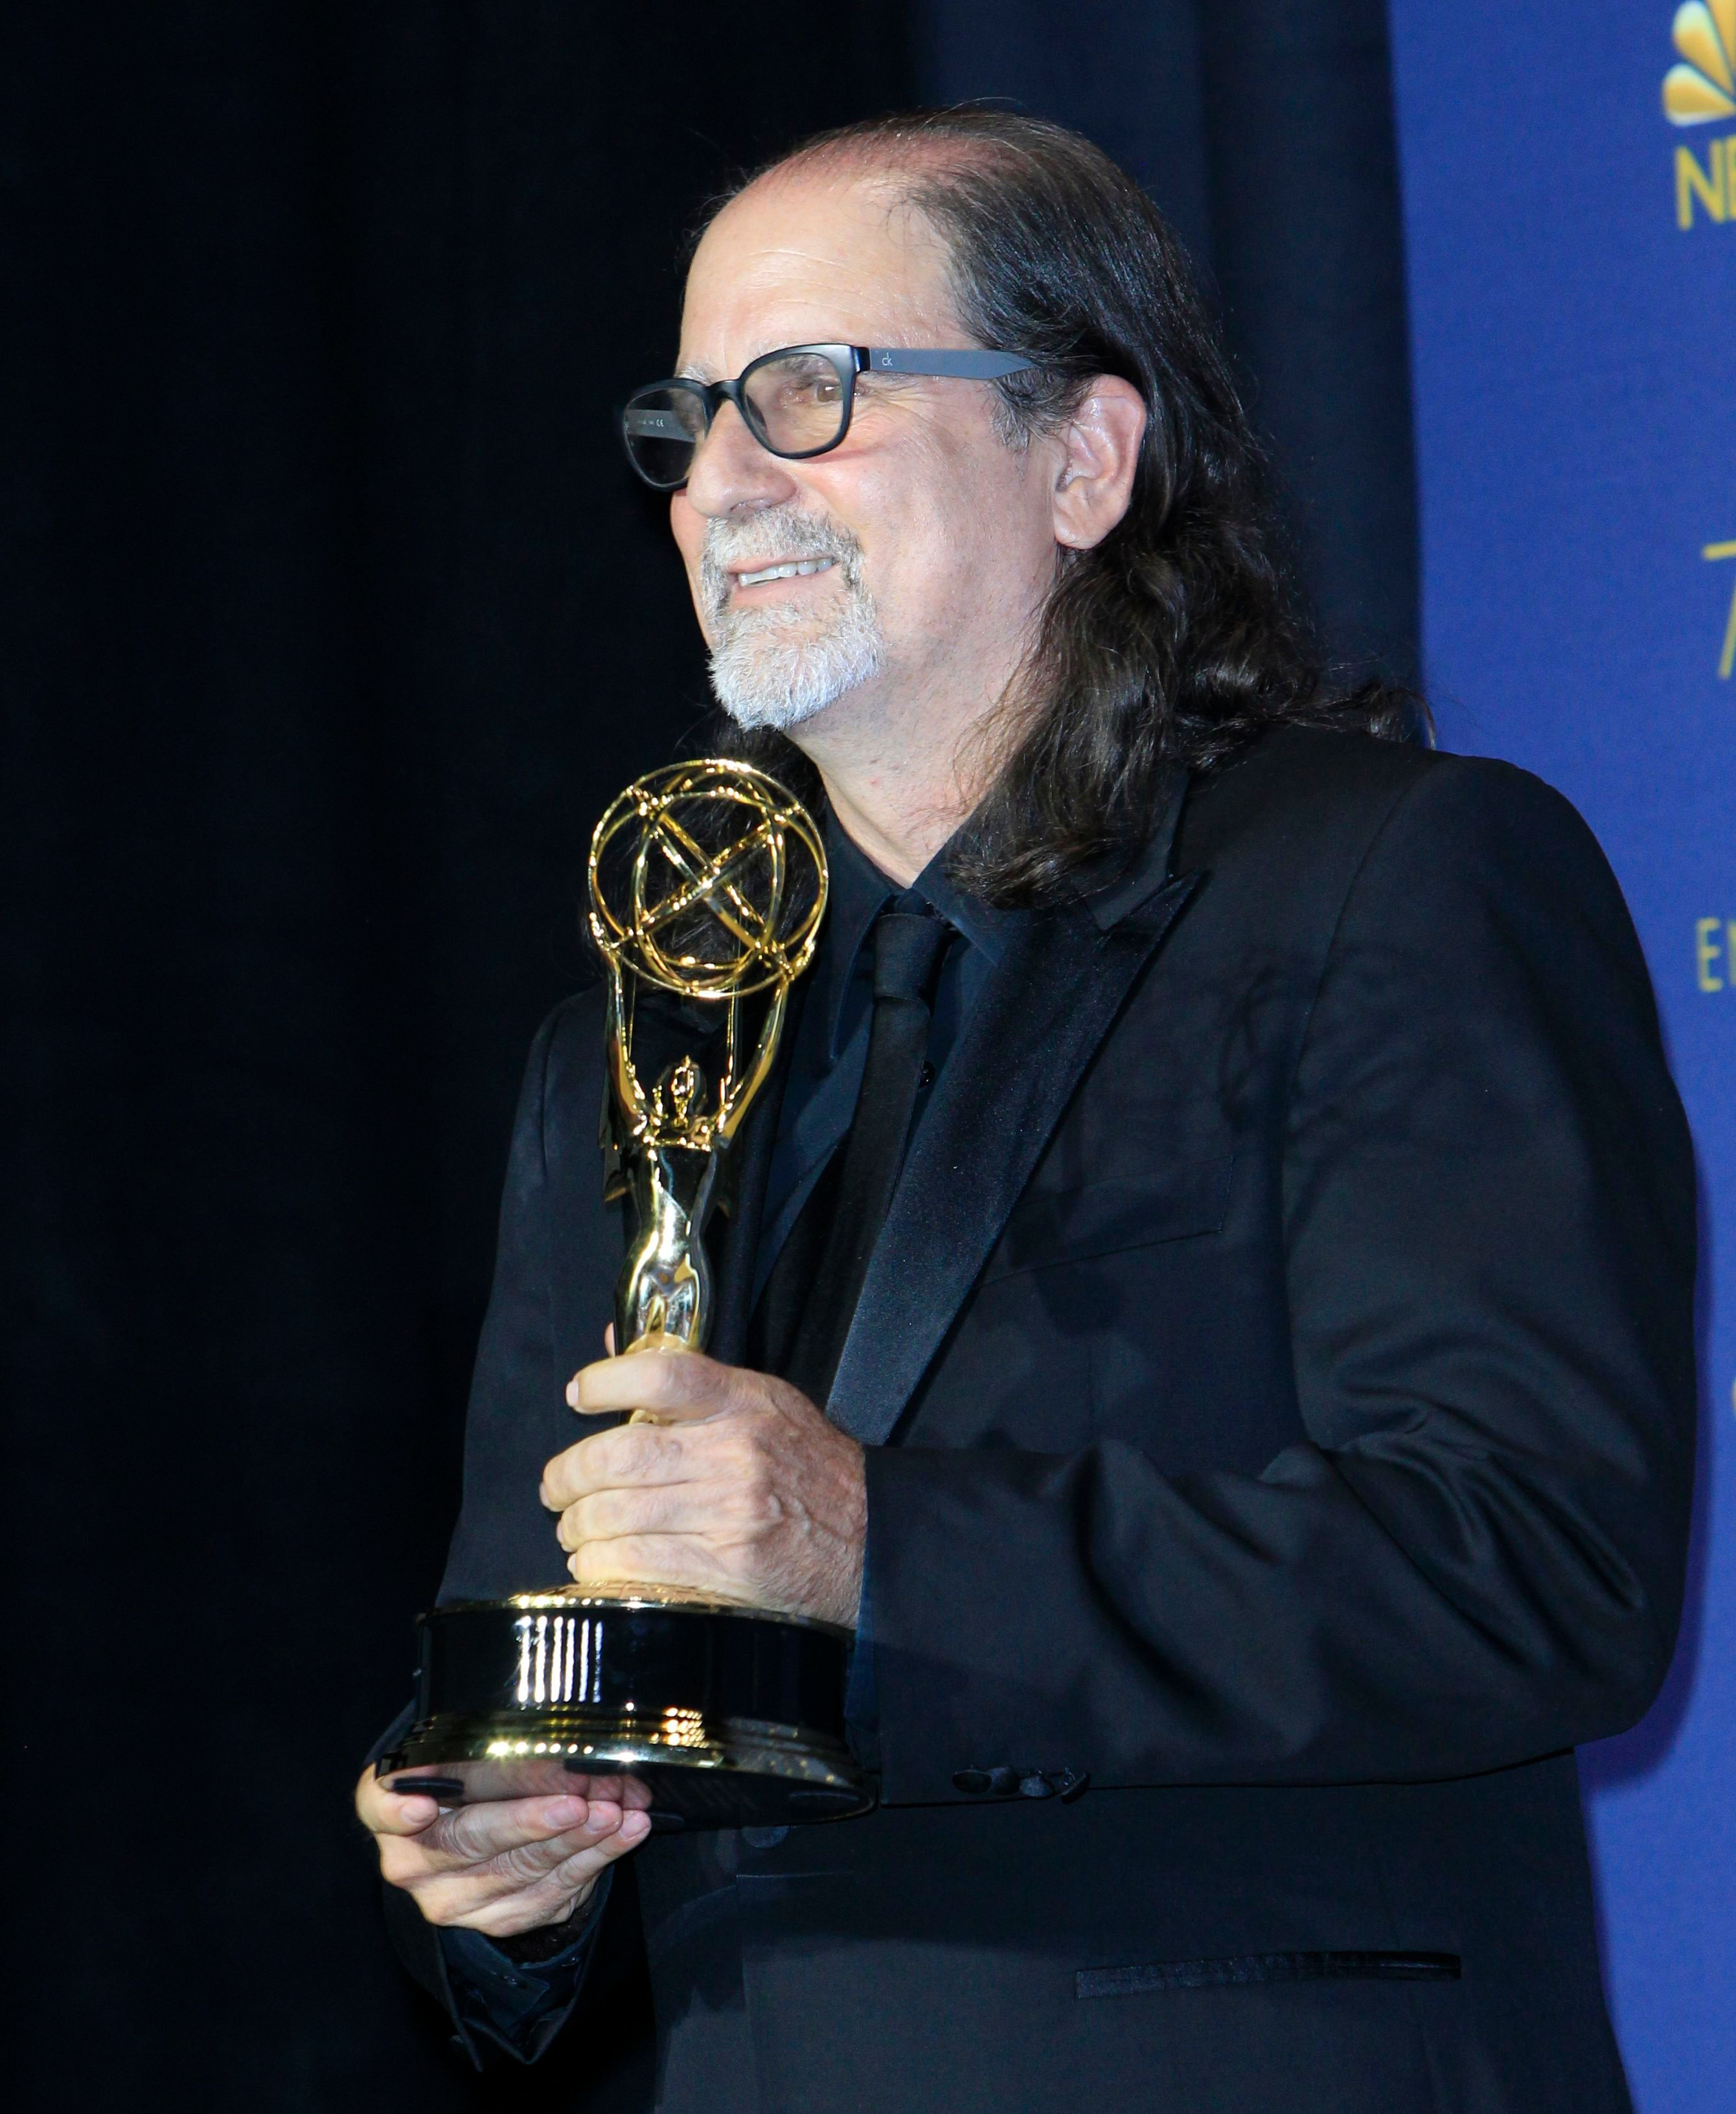 Glenn Weiss holds the Emmy Award for Outstanding Directing for a Variety Special at the 70th annual Primetime Emmy Awards ceremony held at the Microsoft Theater in Los Angeles, California, USA, 17 September 2018. The Primetime Emmys celebrate excellence in national prime-time television programming.Photo Room - 70th Primetime Emmy Awards, Los Angeles, USA - 17 Sep 2018